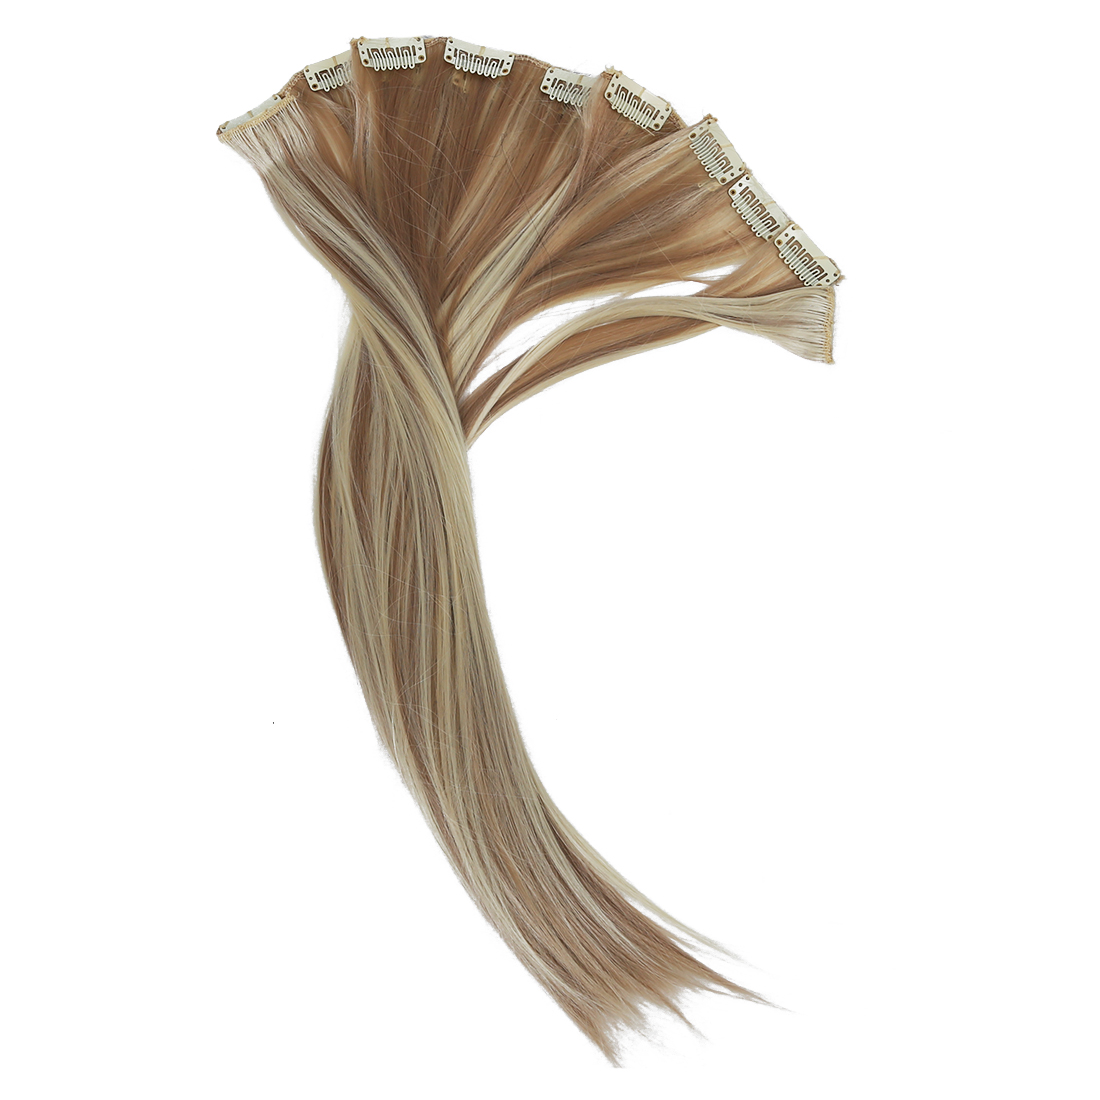 8x 18 #18/613 Blonde Highlights Straight Full Head Synthetic Hair Extensions